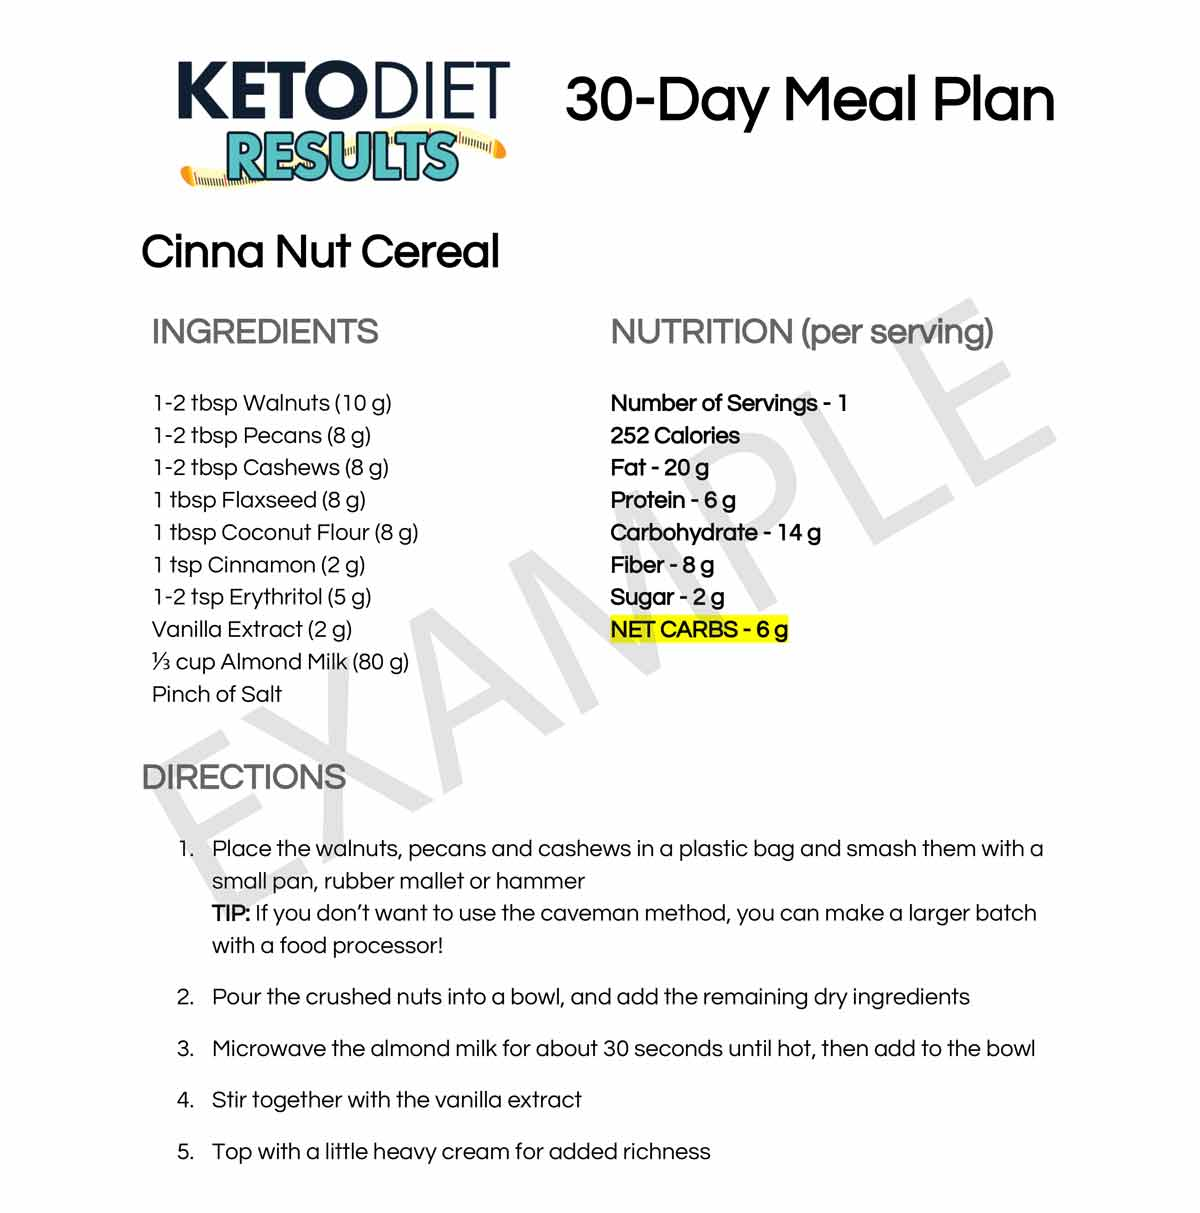 Lose Weight with This 30-Day Keto Meal Plan! - Keto Diet Results